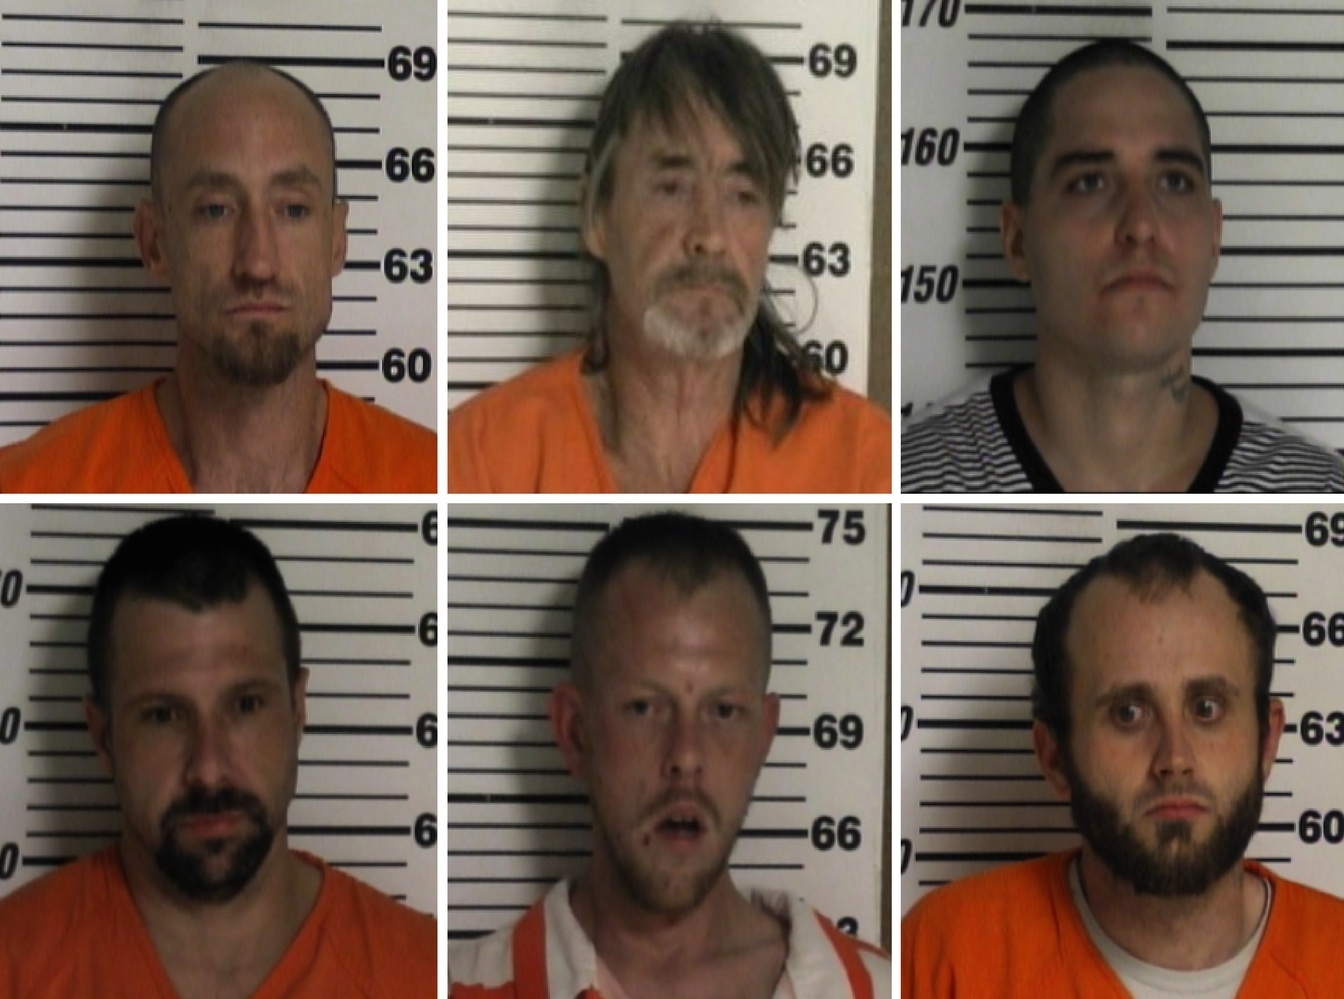 Christmas jail break: Inmates escape Tennessee prison after removing cell toilet